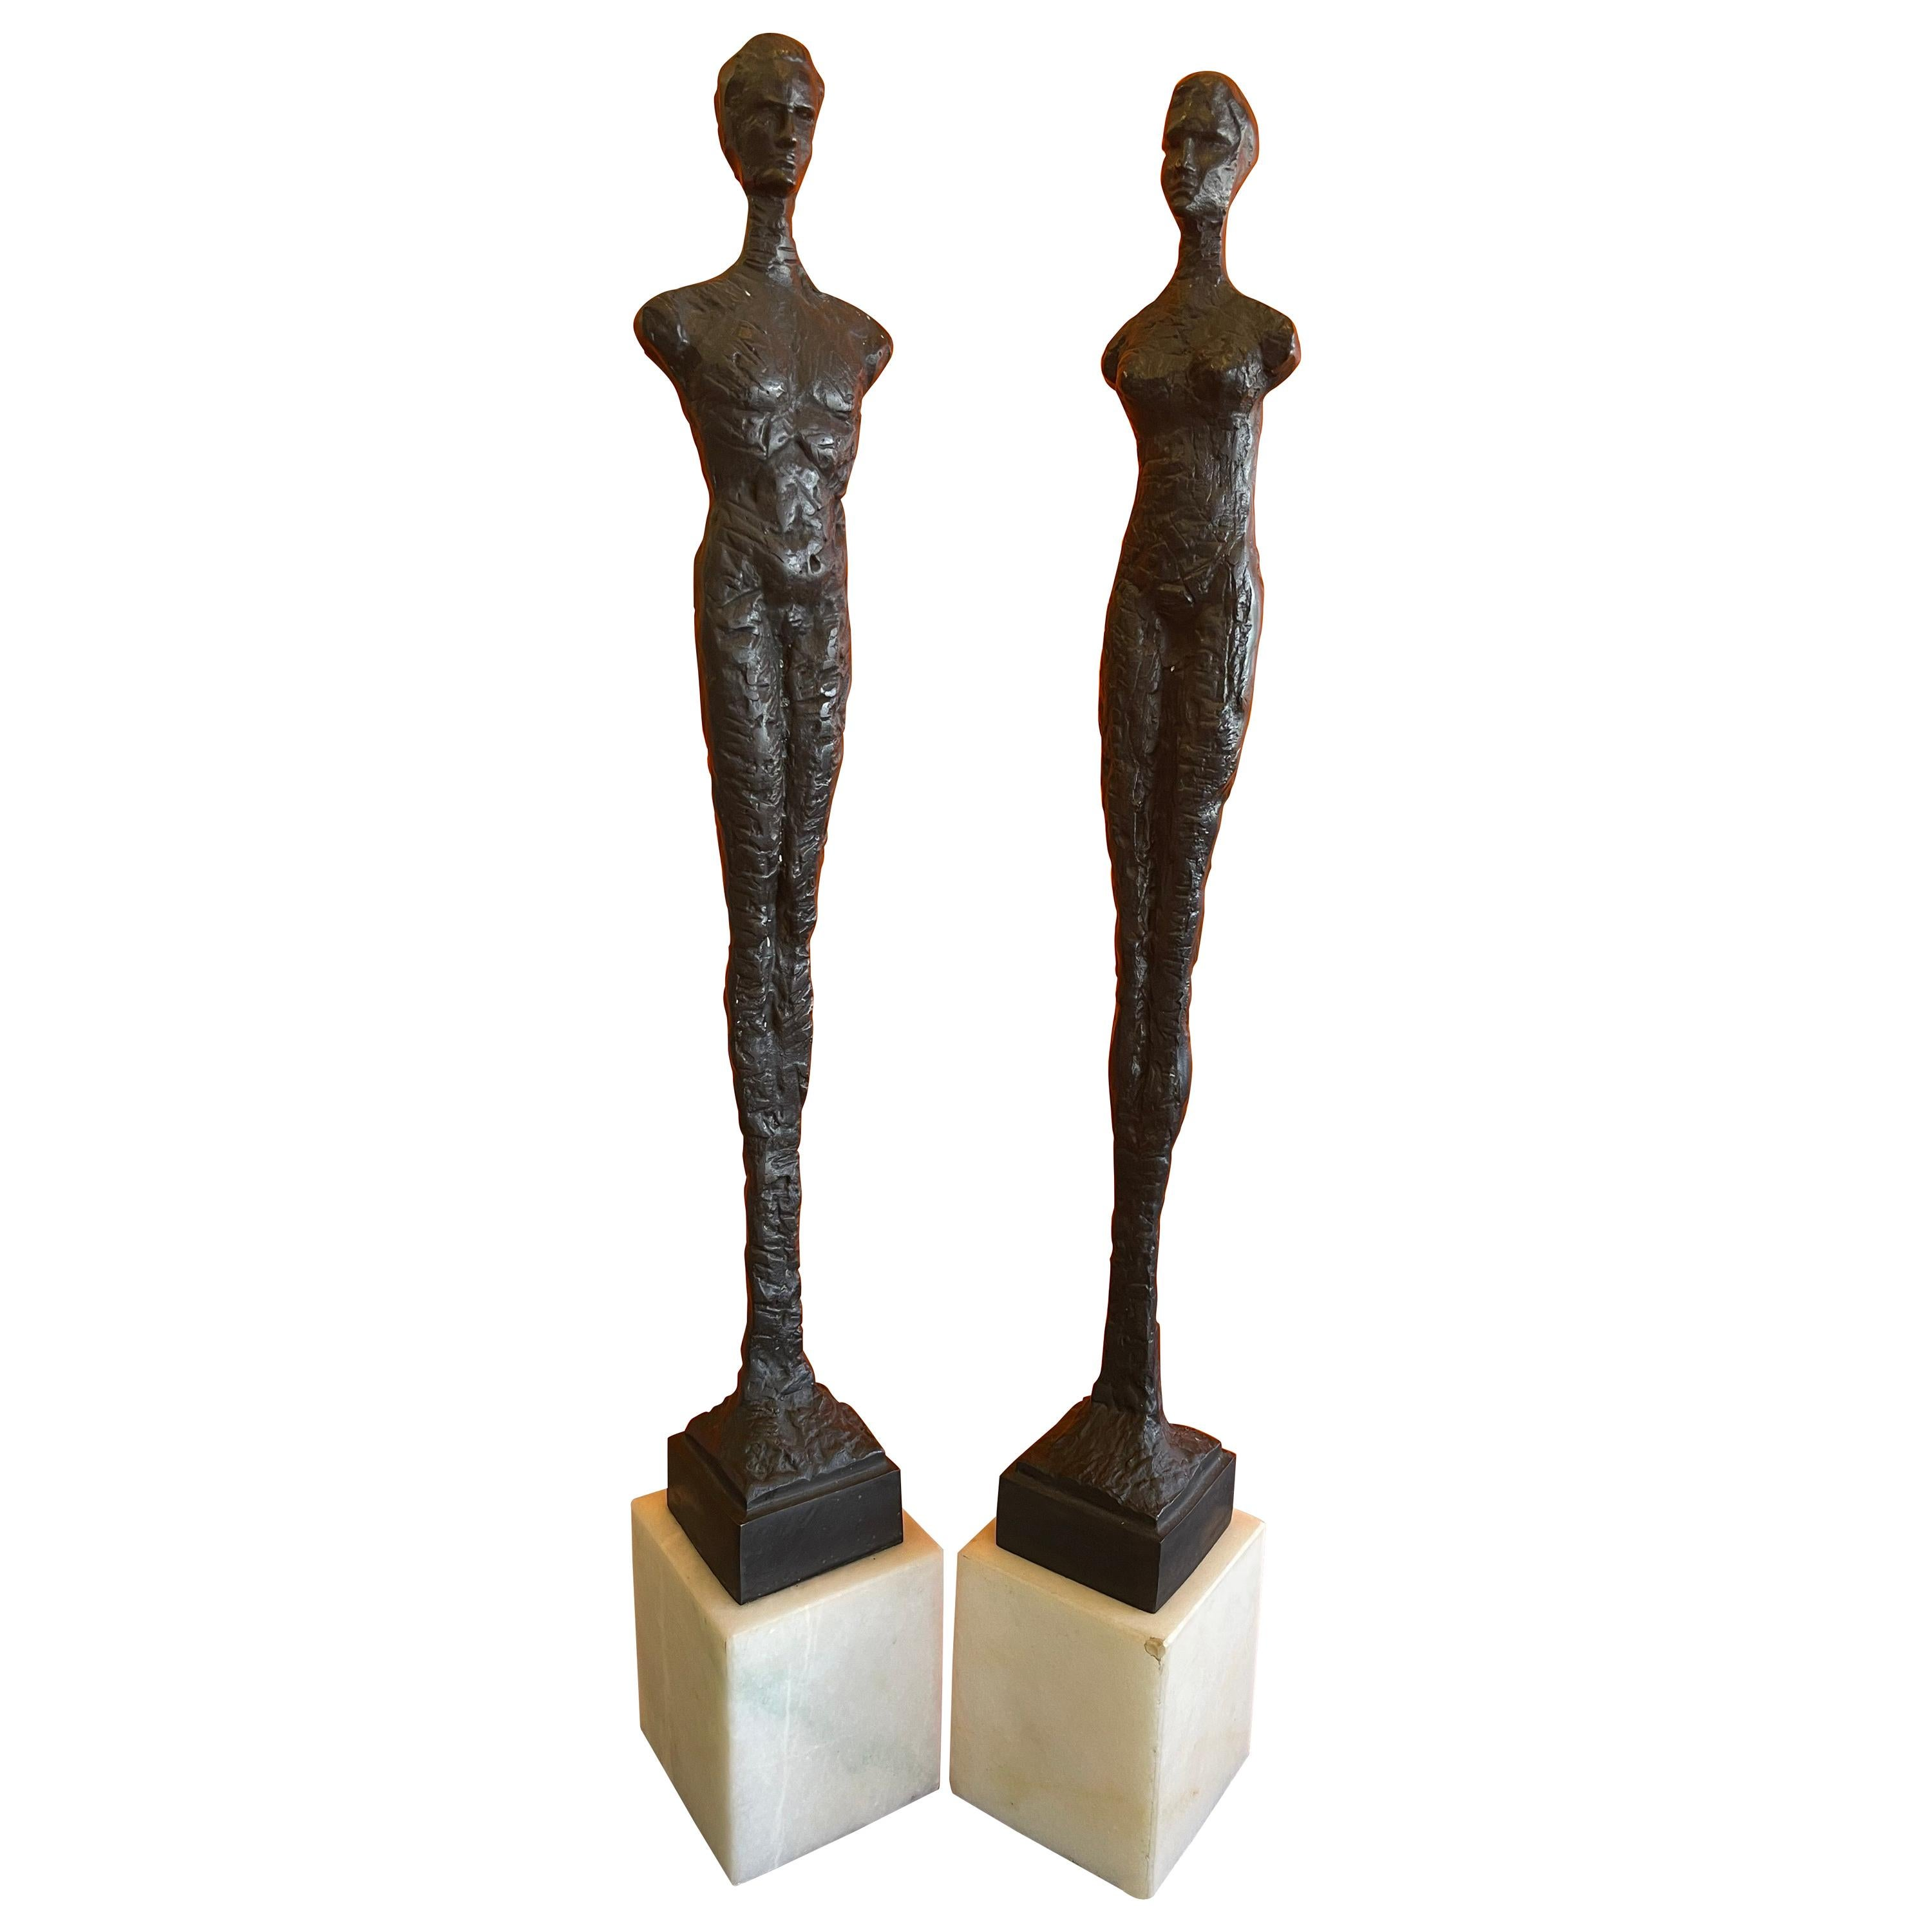 Pair of Figurative Bronze Man & Woman Sculptures in the Style of Giacometti